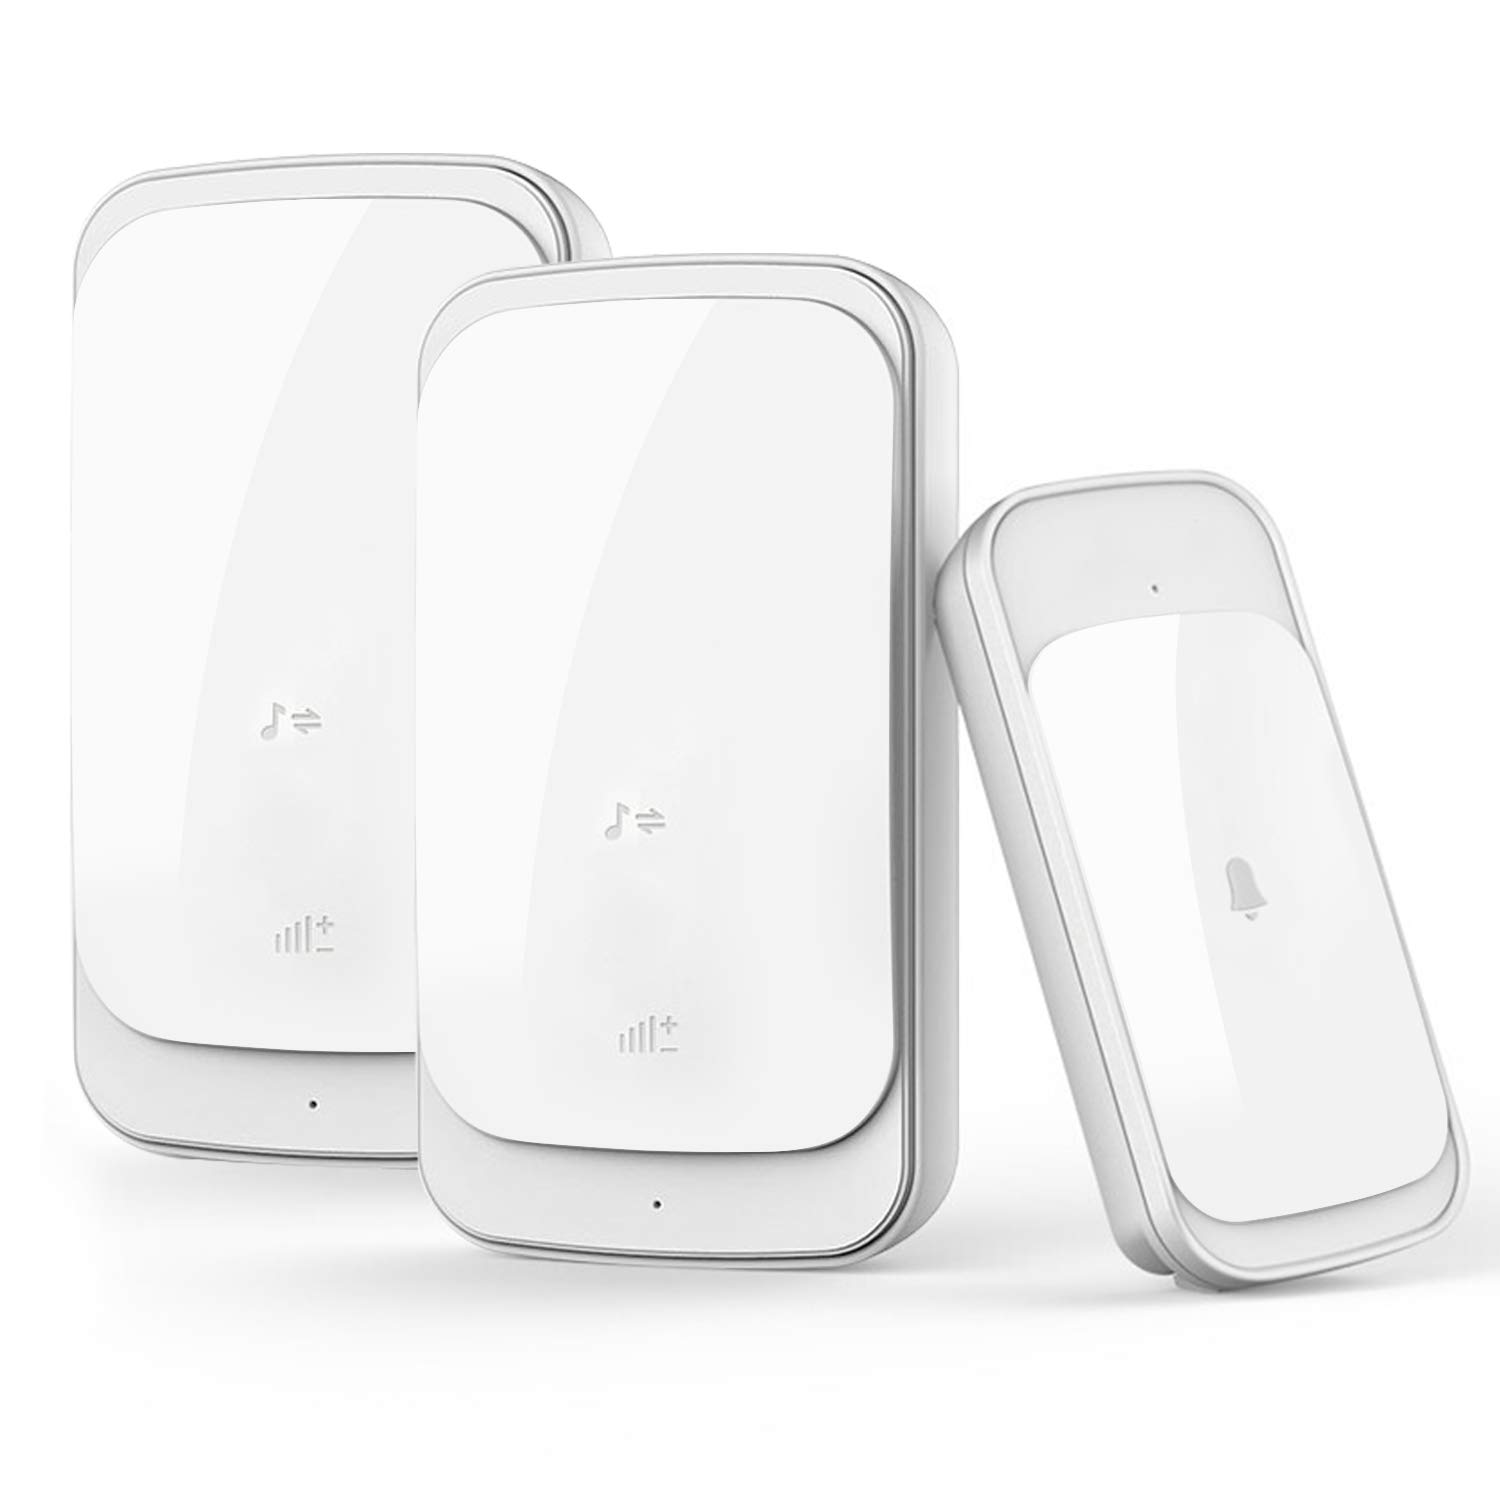 Wireless Doorbell Kit with 2 Plug-in Receivers Wireless Door Chime IP44 Waterpoof Operating at Over 1000 Feet/300M with 58 Melodies, 4 Volume Levels & LED Indicators (White)